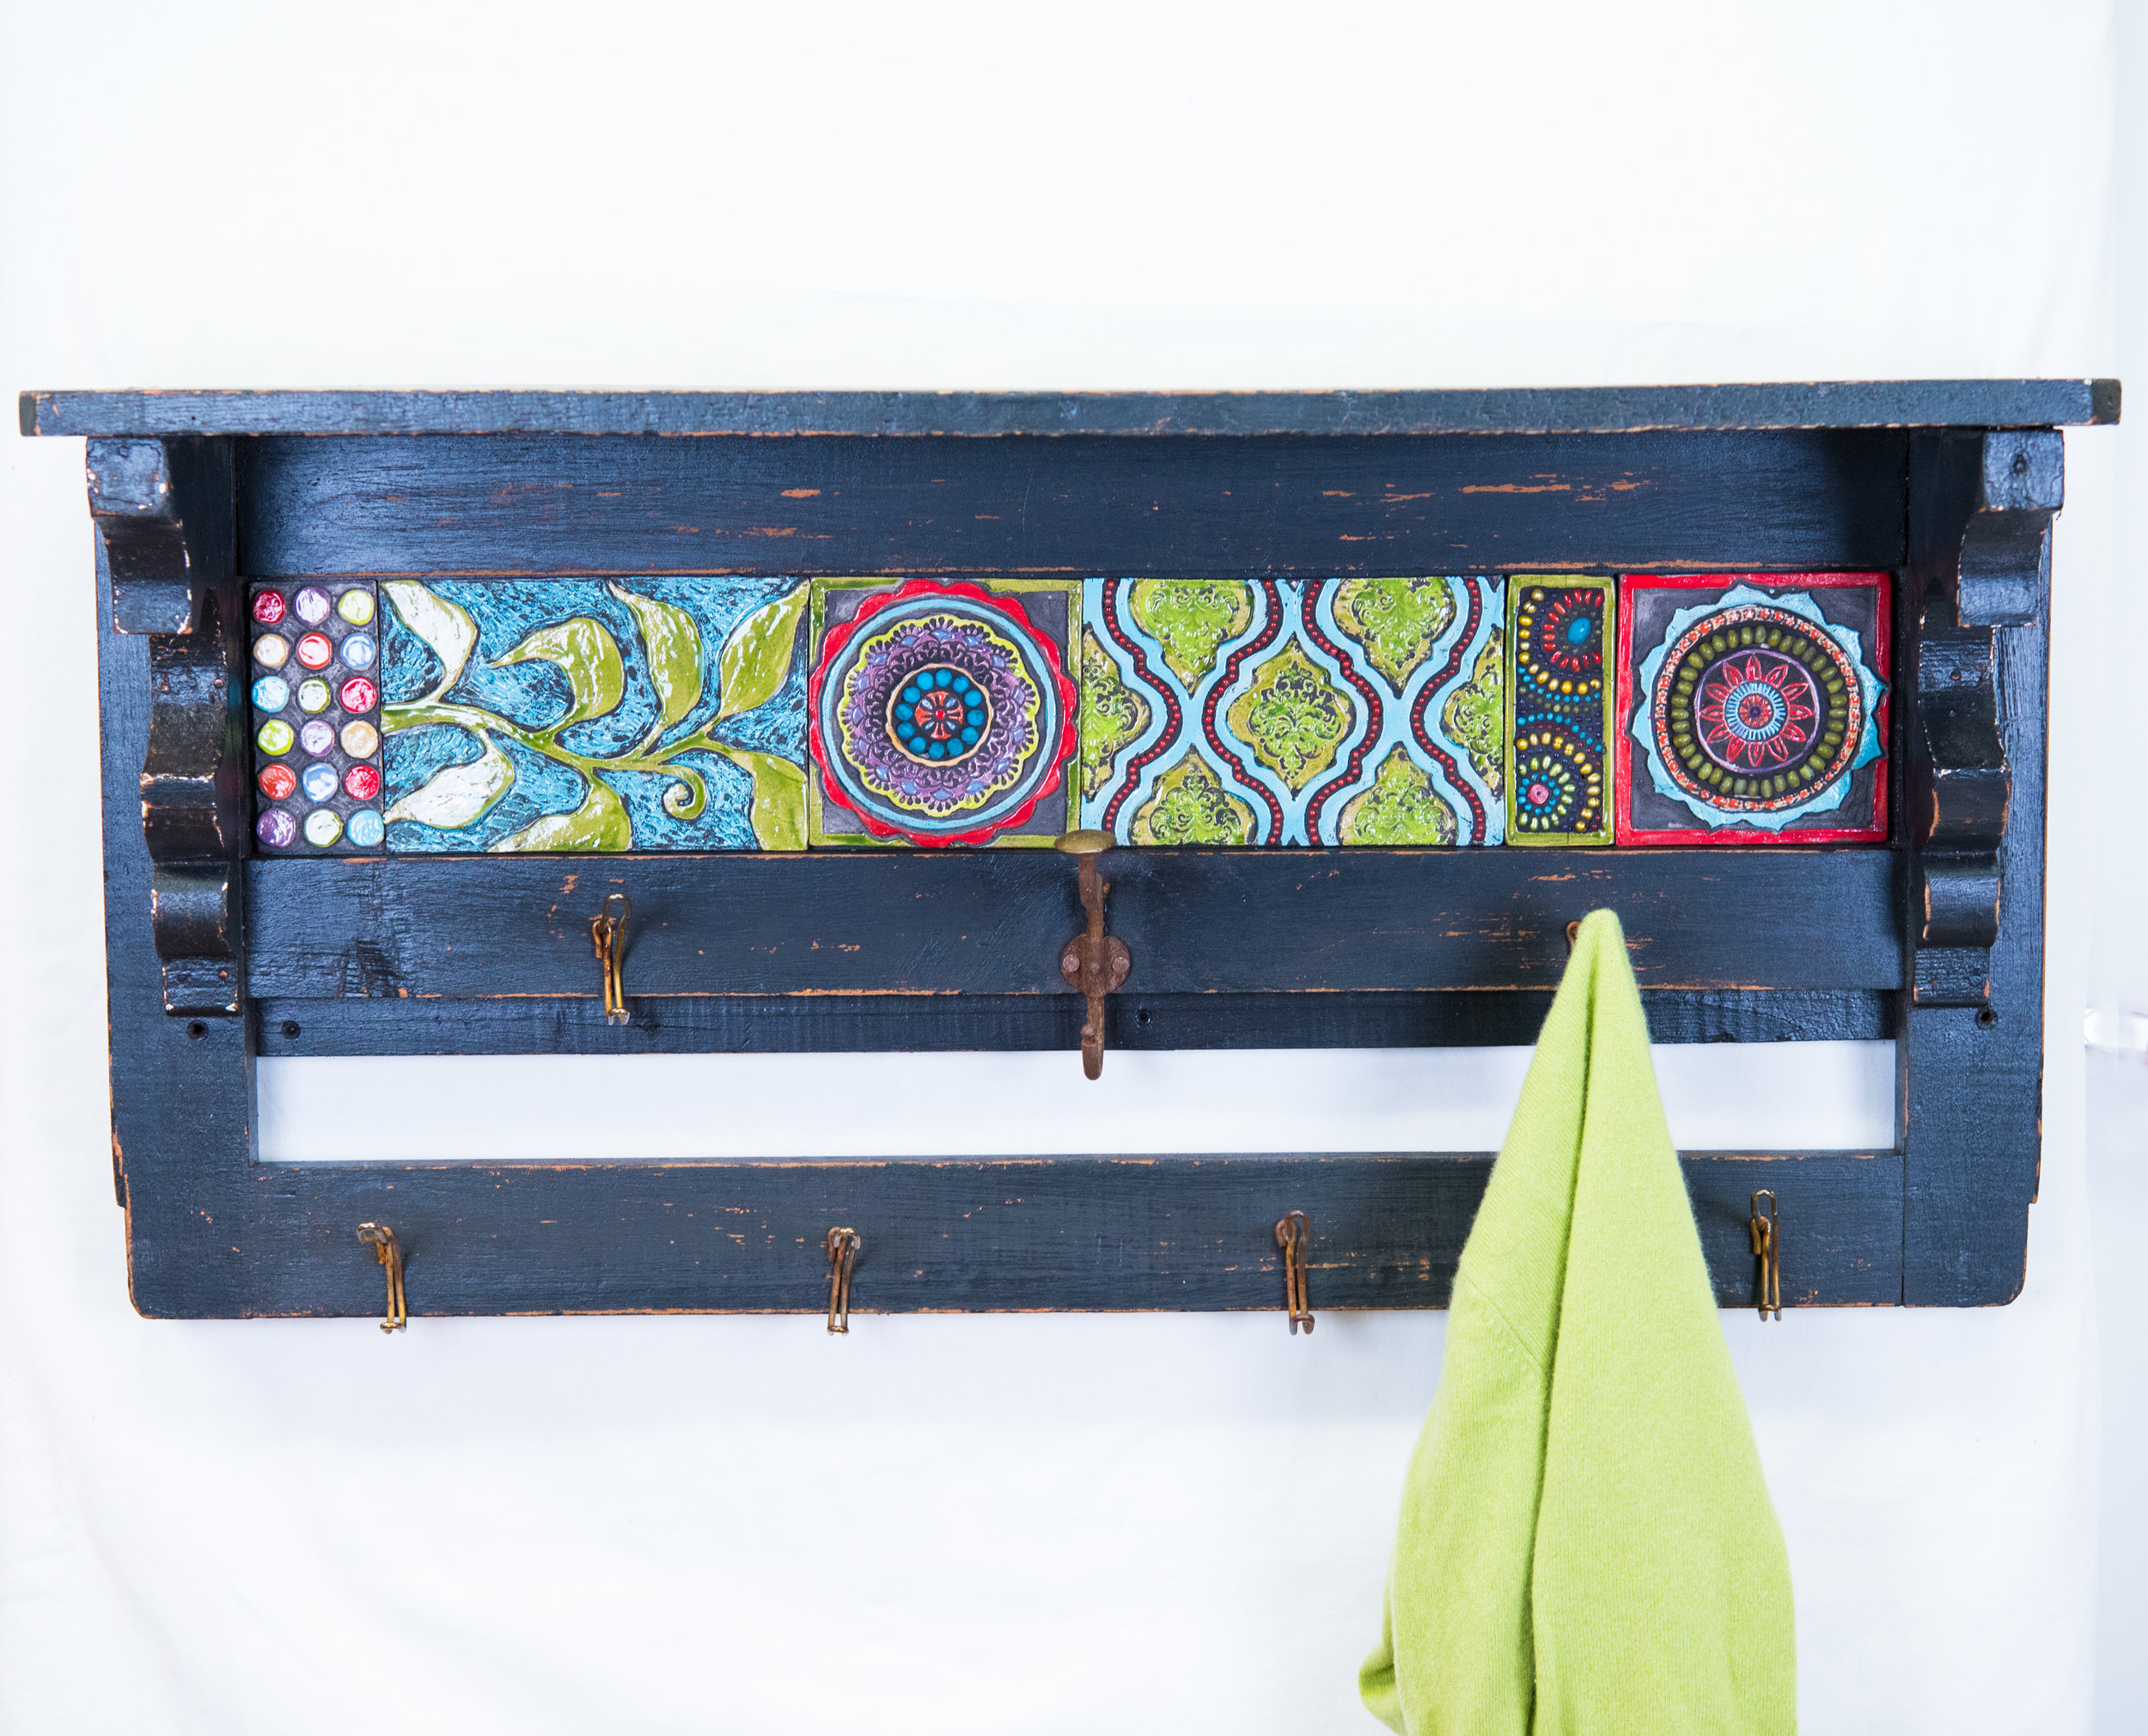 Repurposed Vintage Trim Wall Shelf with Raku Fired Clay Tile Mosaic Art and Vintage Coat Hooks